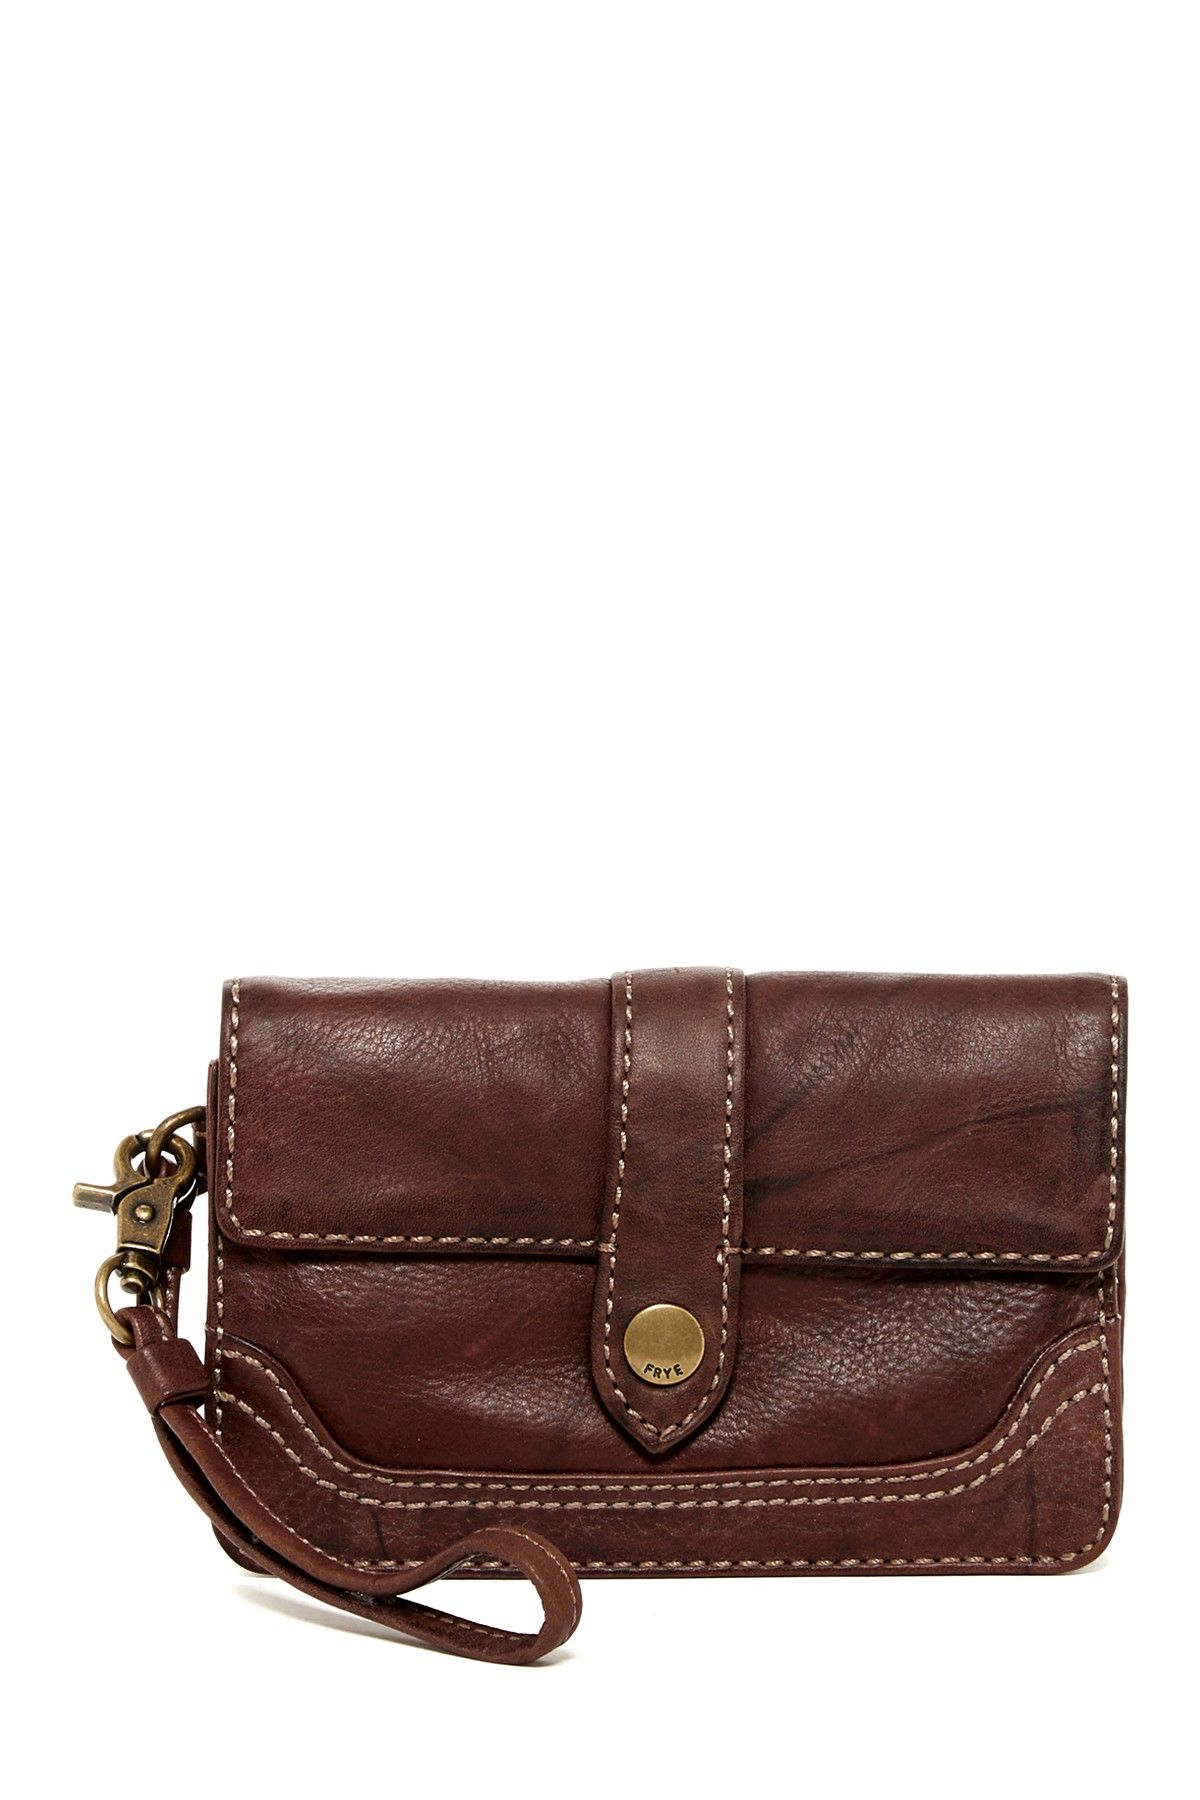 Frye Campus Leather Wristlet College bags, What's in